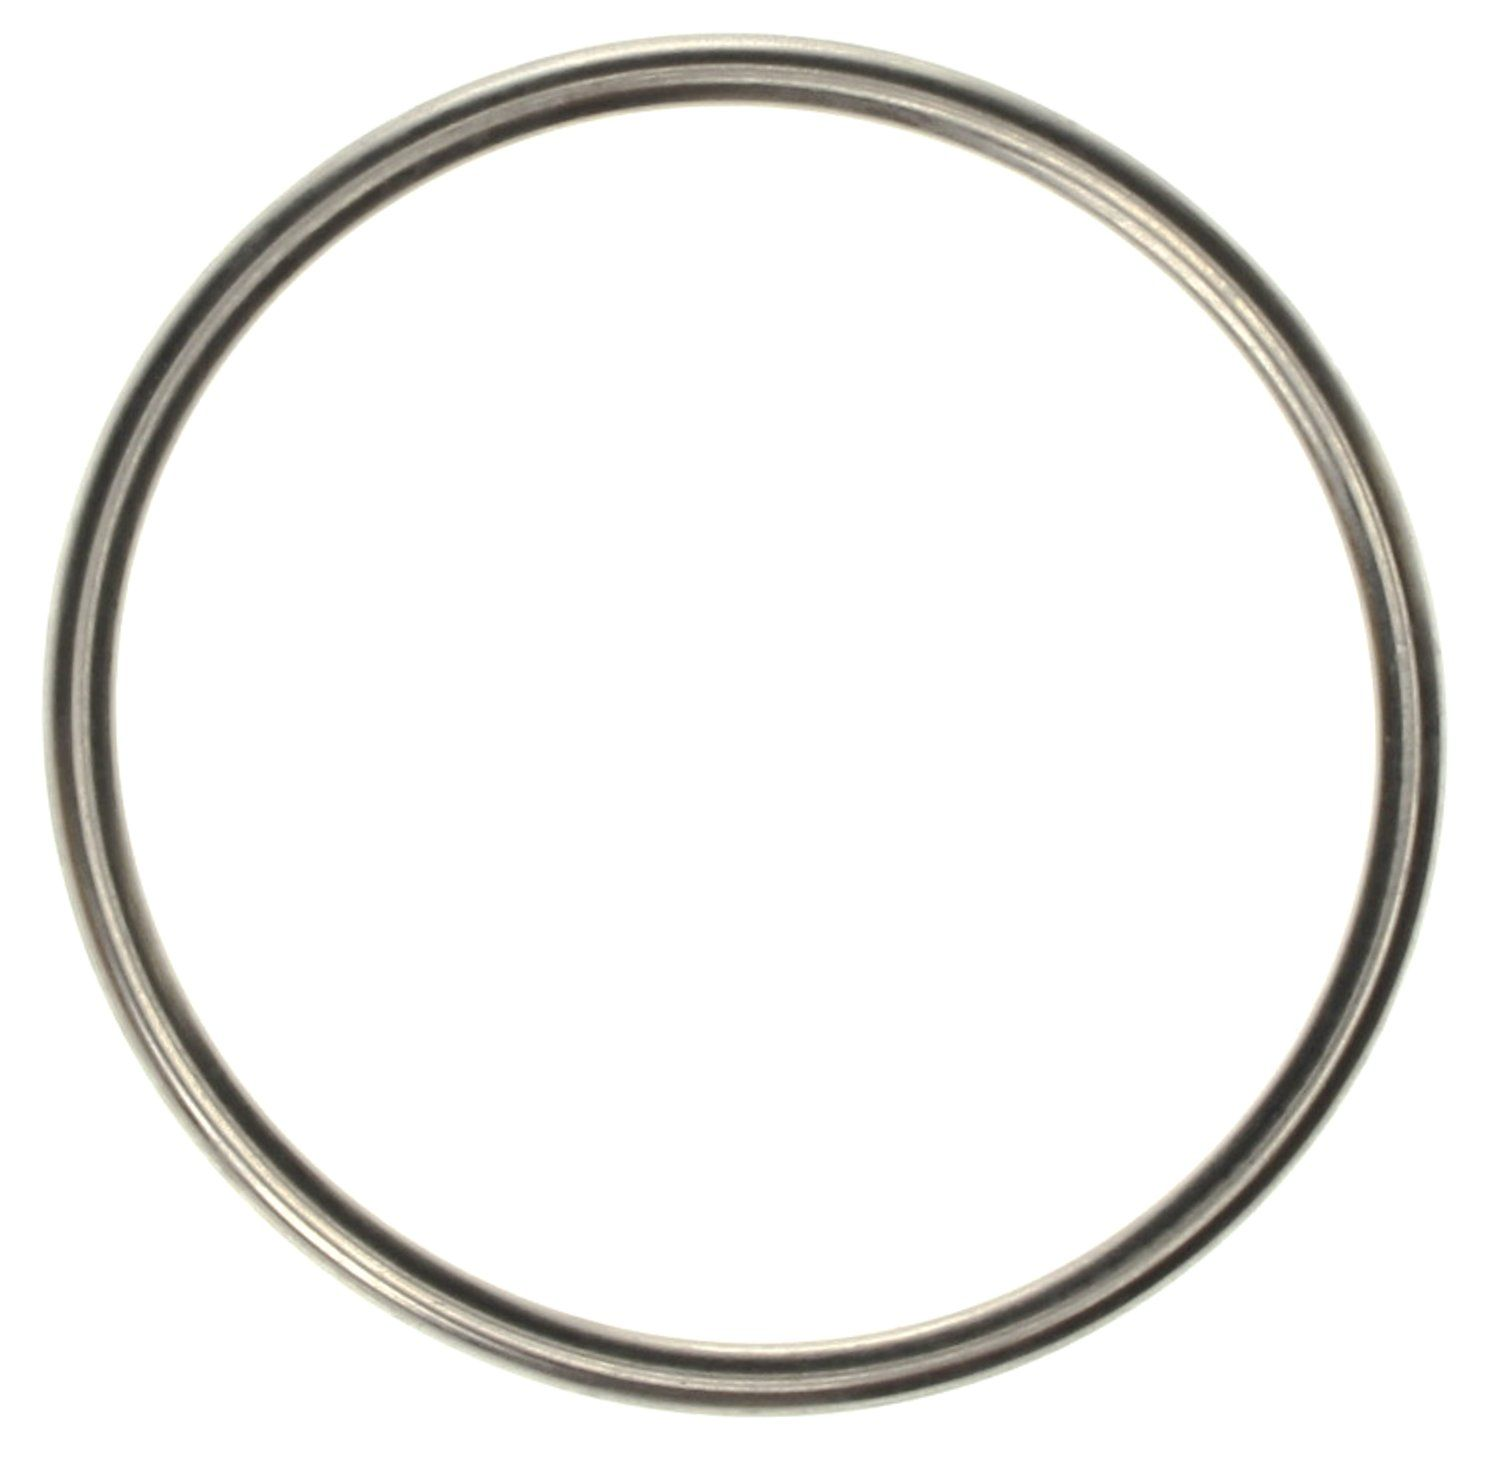 exhaust flange gasket. 2002 gmc yukon xl 1500 exhaust pipe flange gasket - left 8 cyl 5.3l (victor gaskets f31618) ring type a steel and composition manifold to